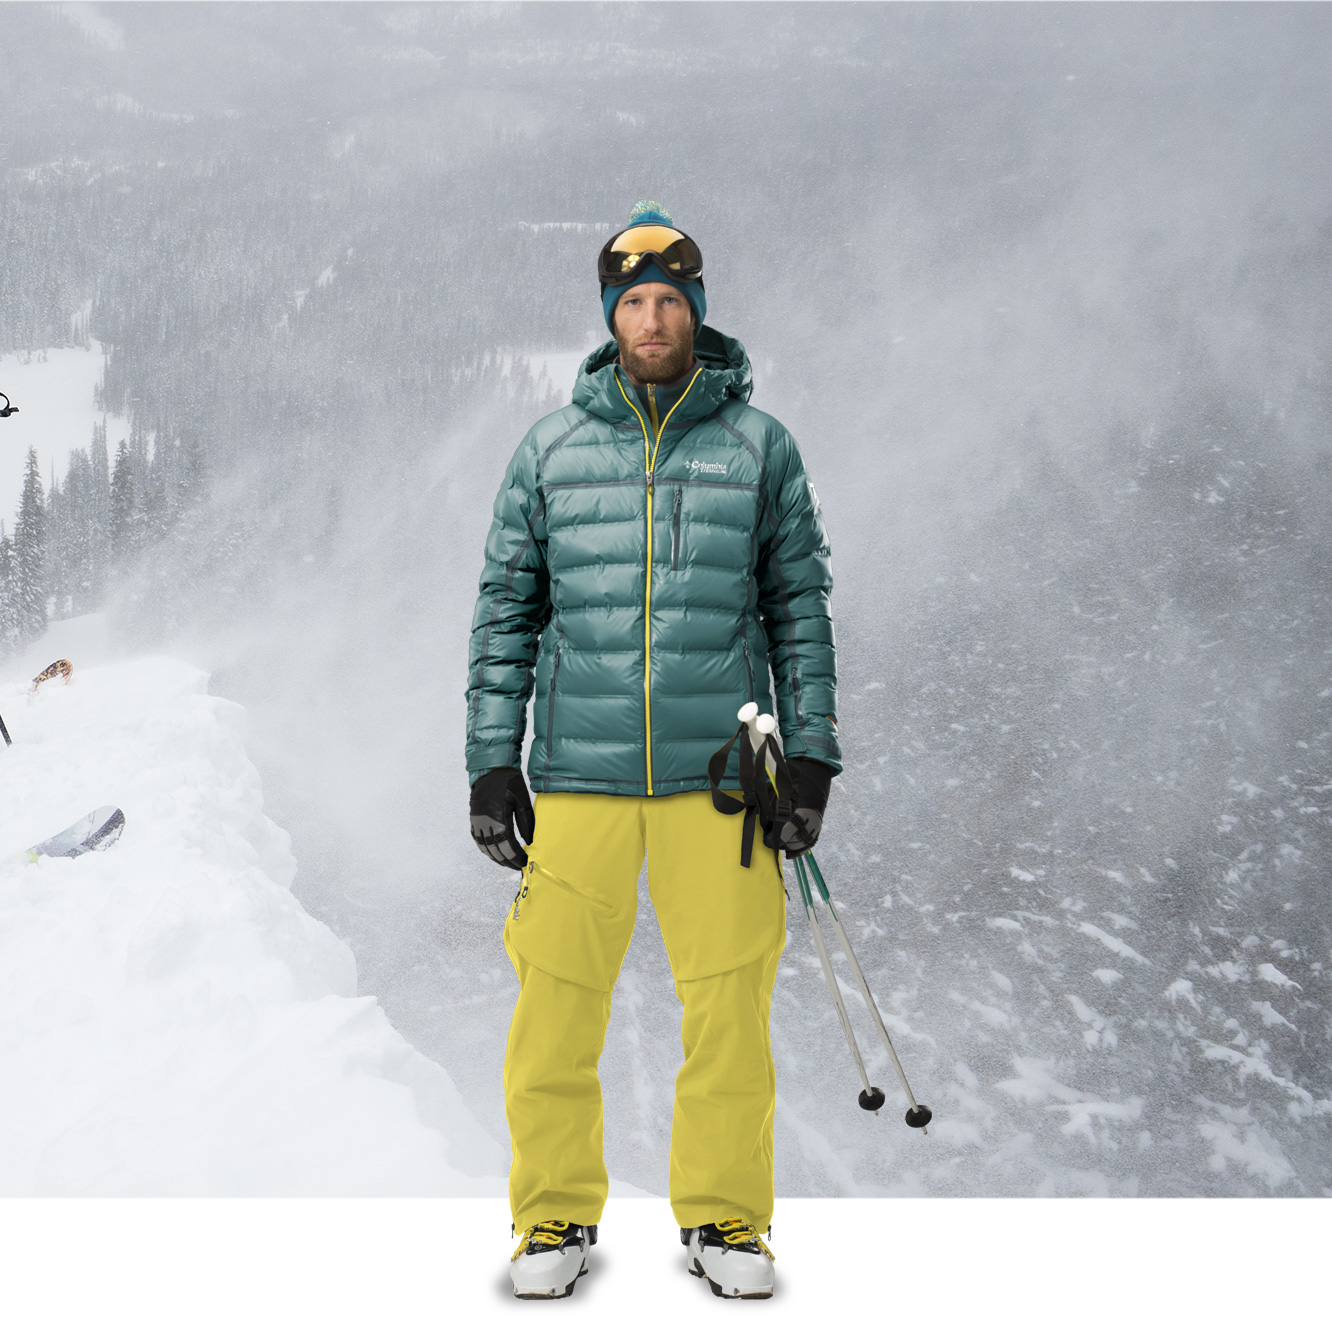 A man standing in a complete ski outfit